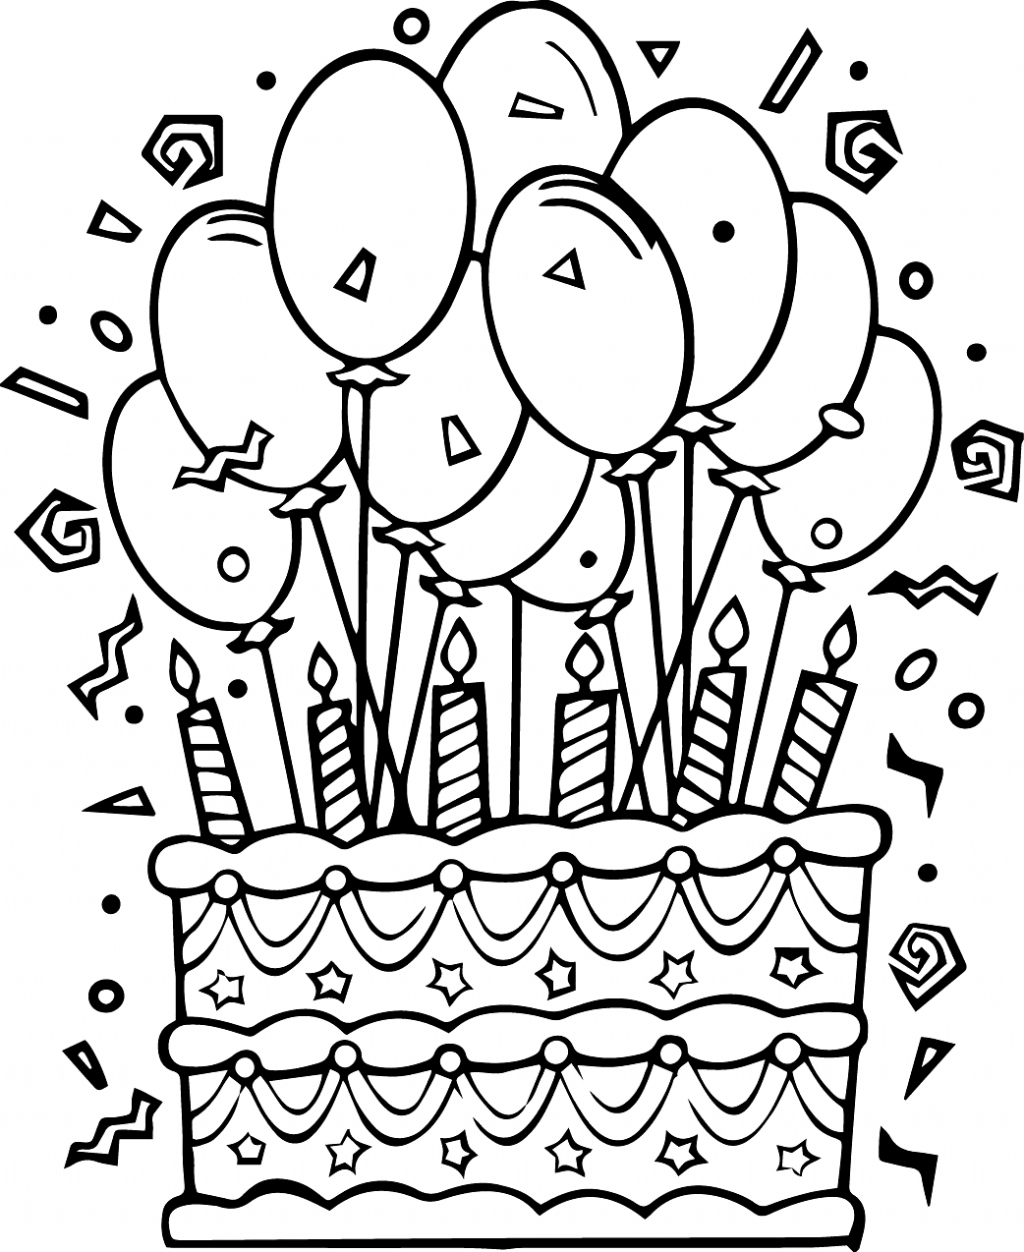 happy 70th birthday coloring pages cake happy birthday party coloring pages nice coloring birthday 70th happy coloring pages